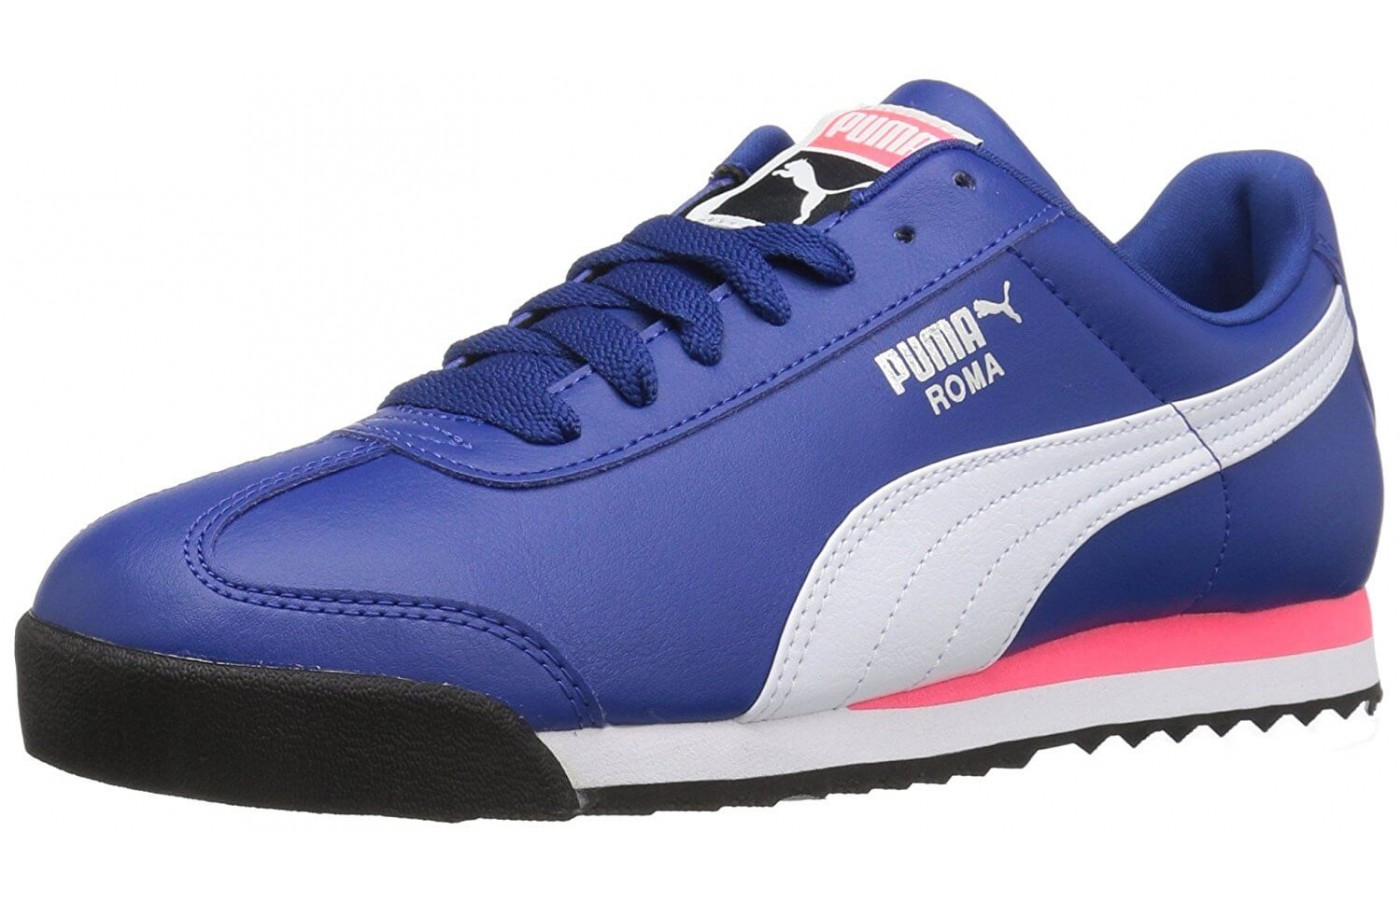 finest selection 402c9 49ab1 The Puma Roma features a faux-leather upper ...